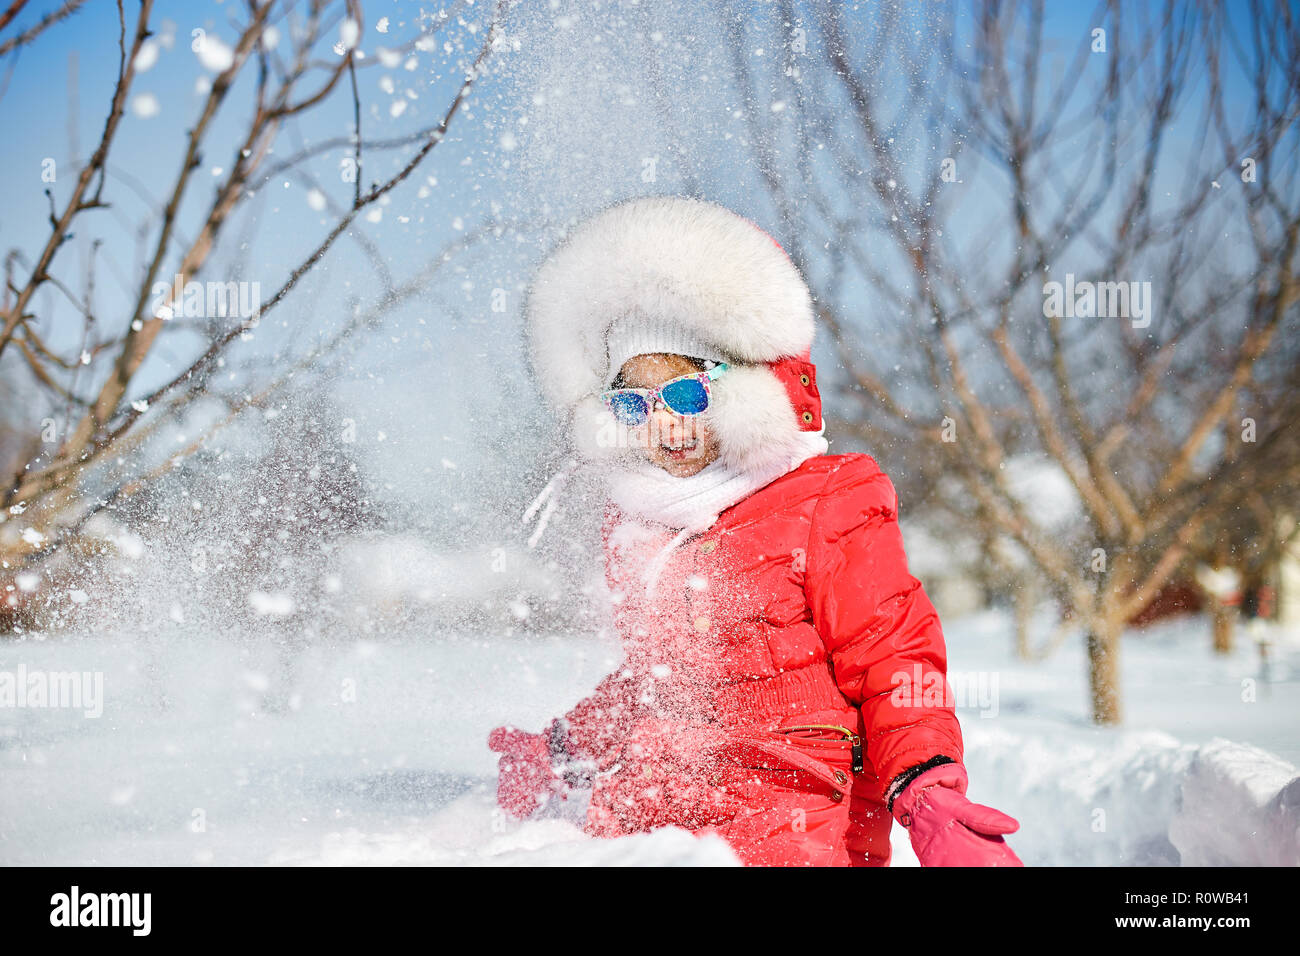 d0ce00c38 Cute little girl in winter